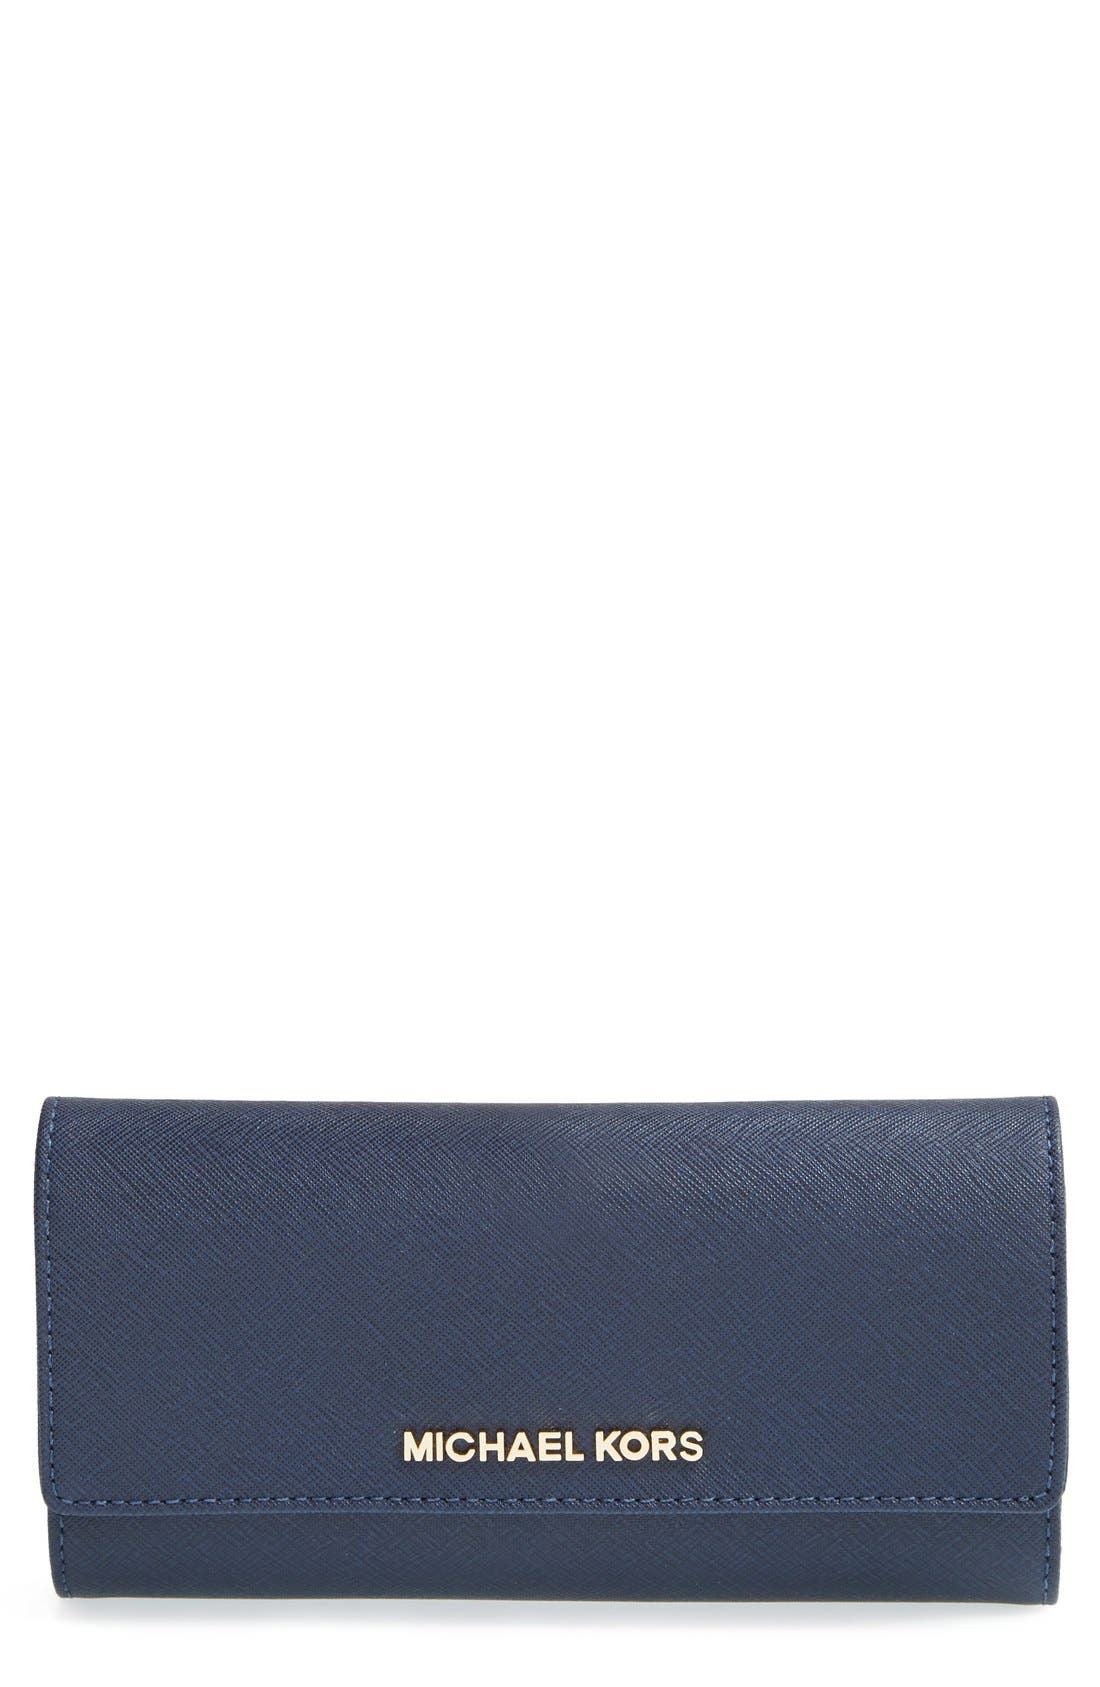 Alternate Image 1 Selected - MICHAEL Michael Kors 'Jet Set' Saffiano Leather Checkbook Wallet